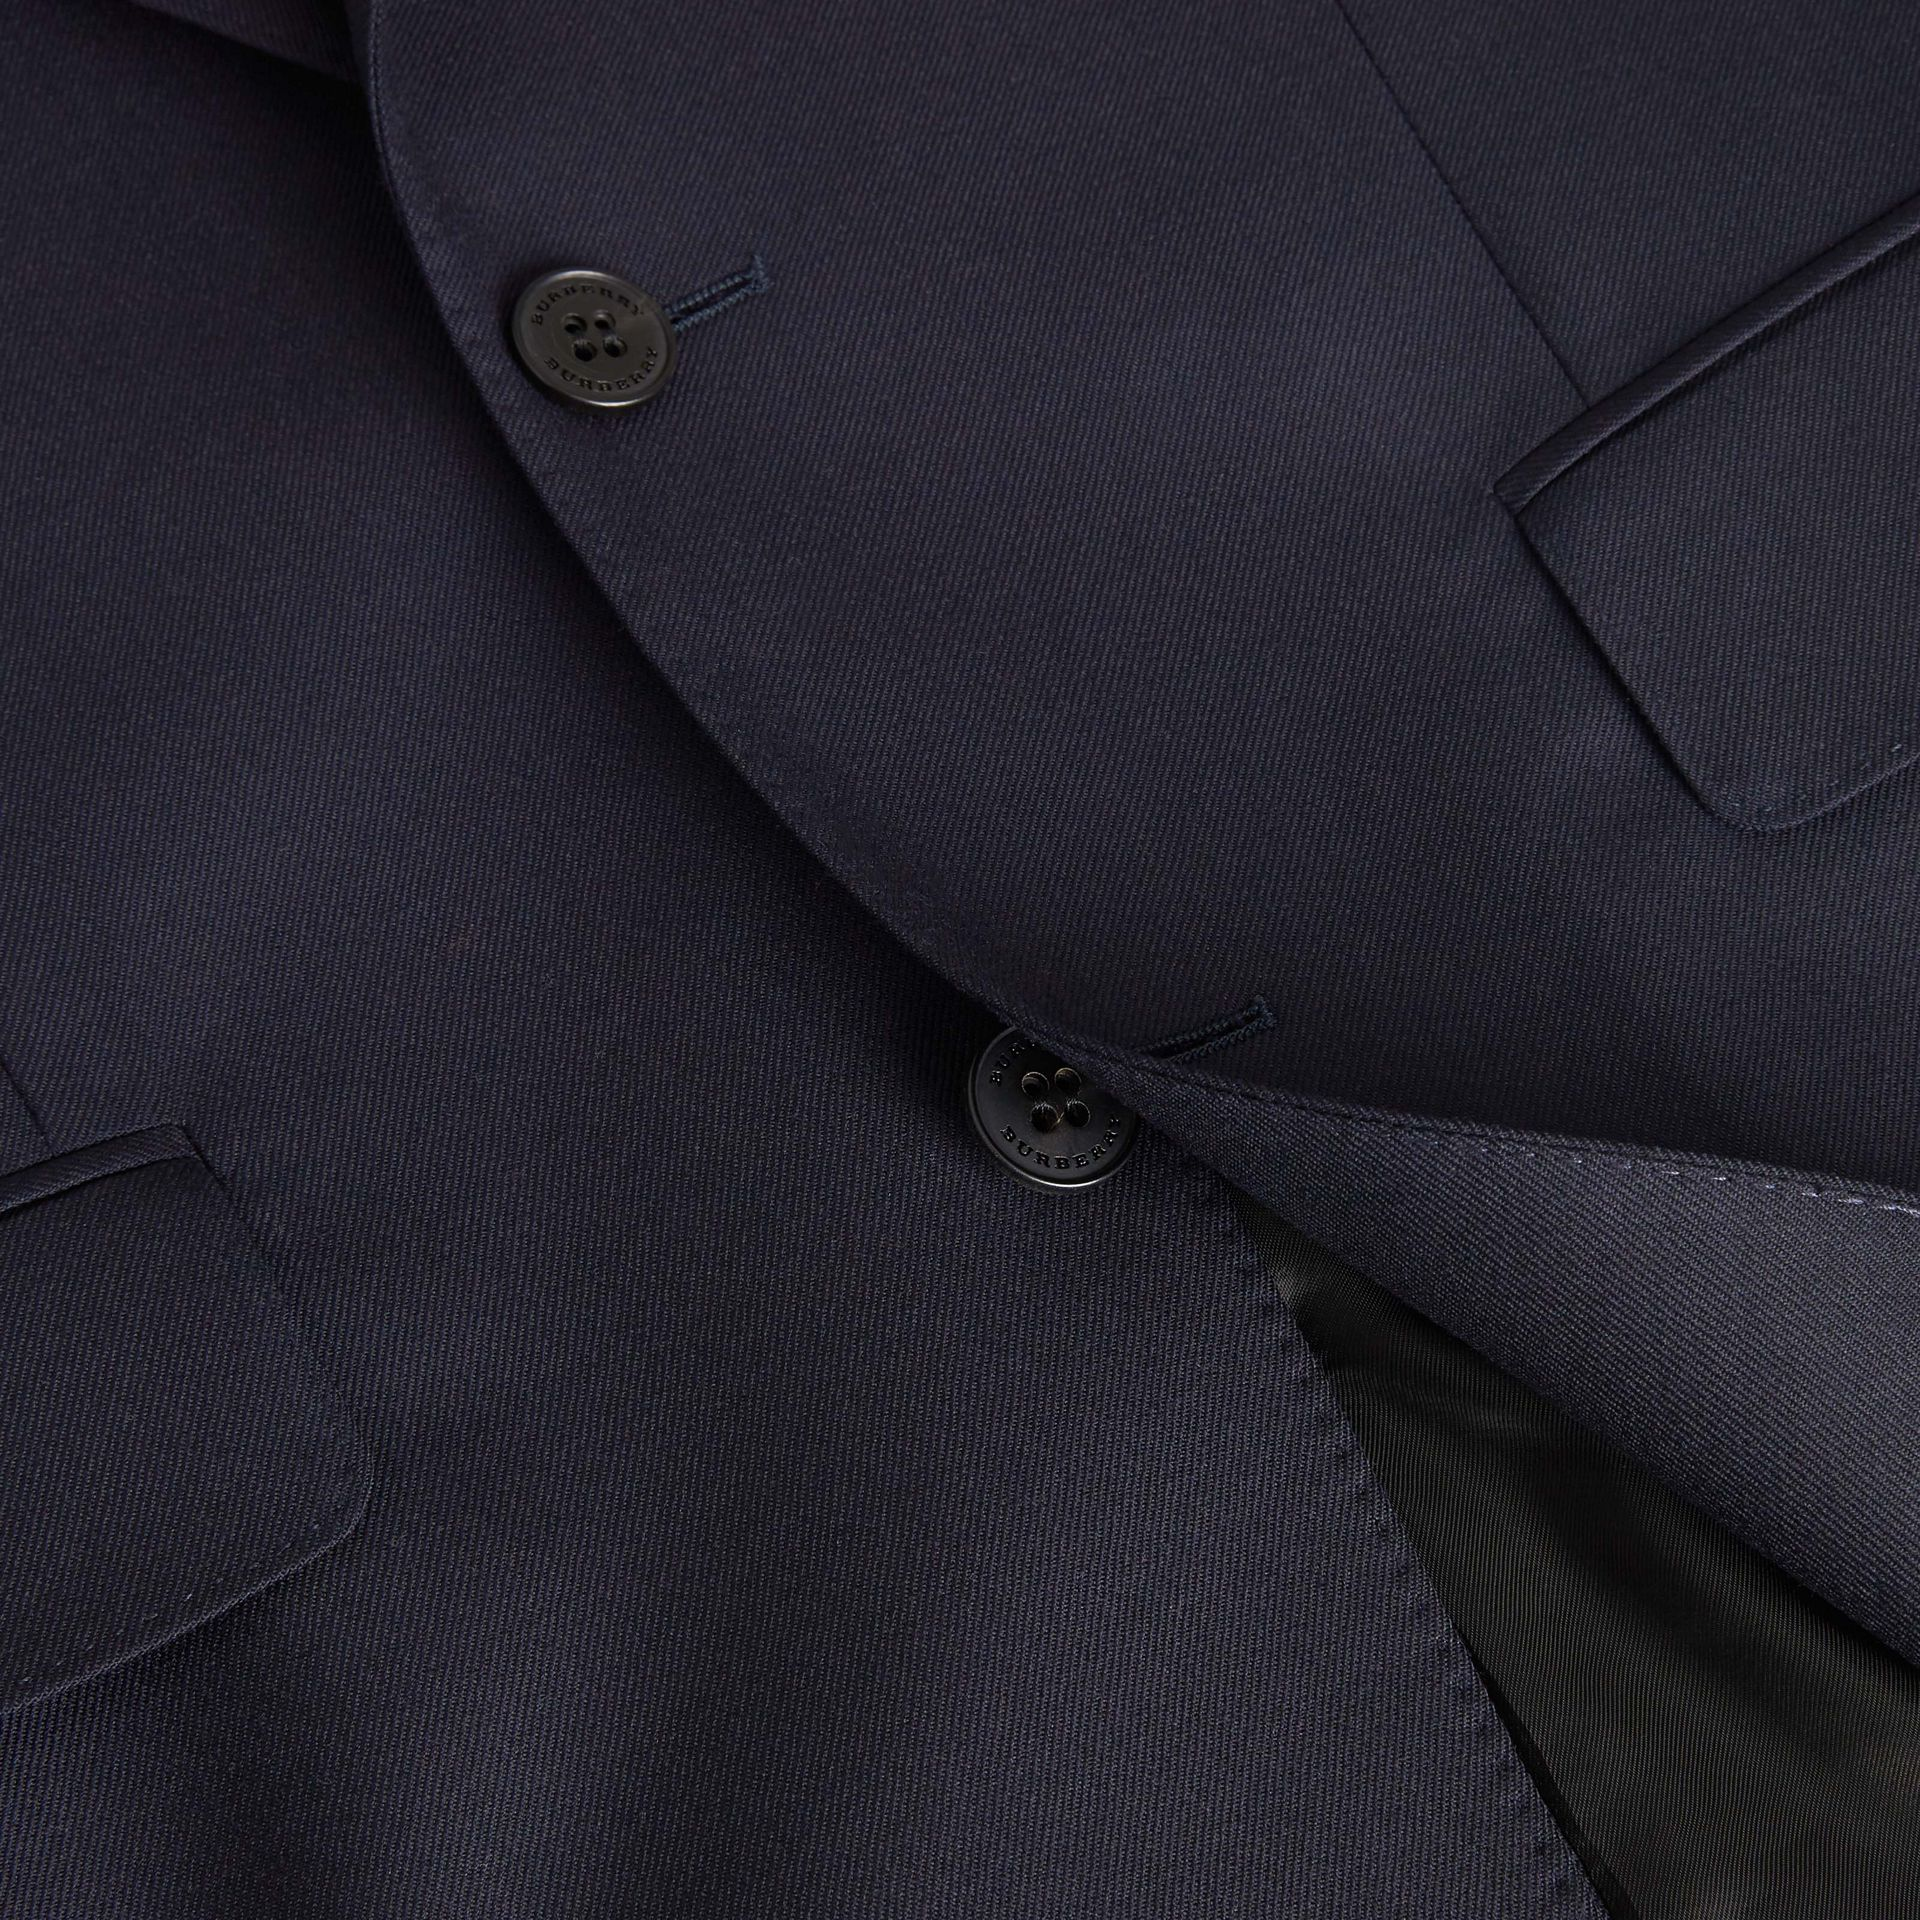 Classic Fit Wool Twill Suit in Navy - Men | Burberry - gallery image 9